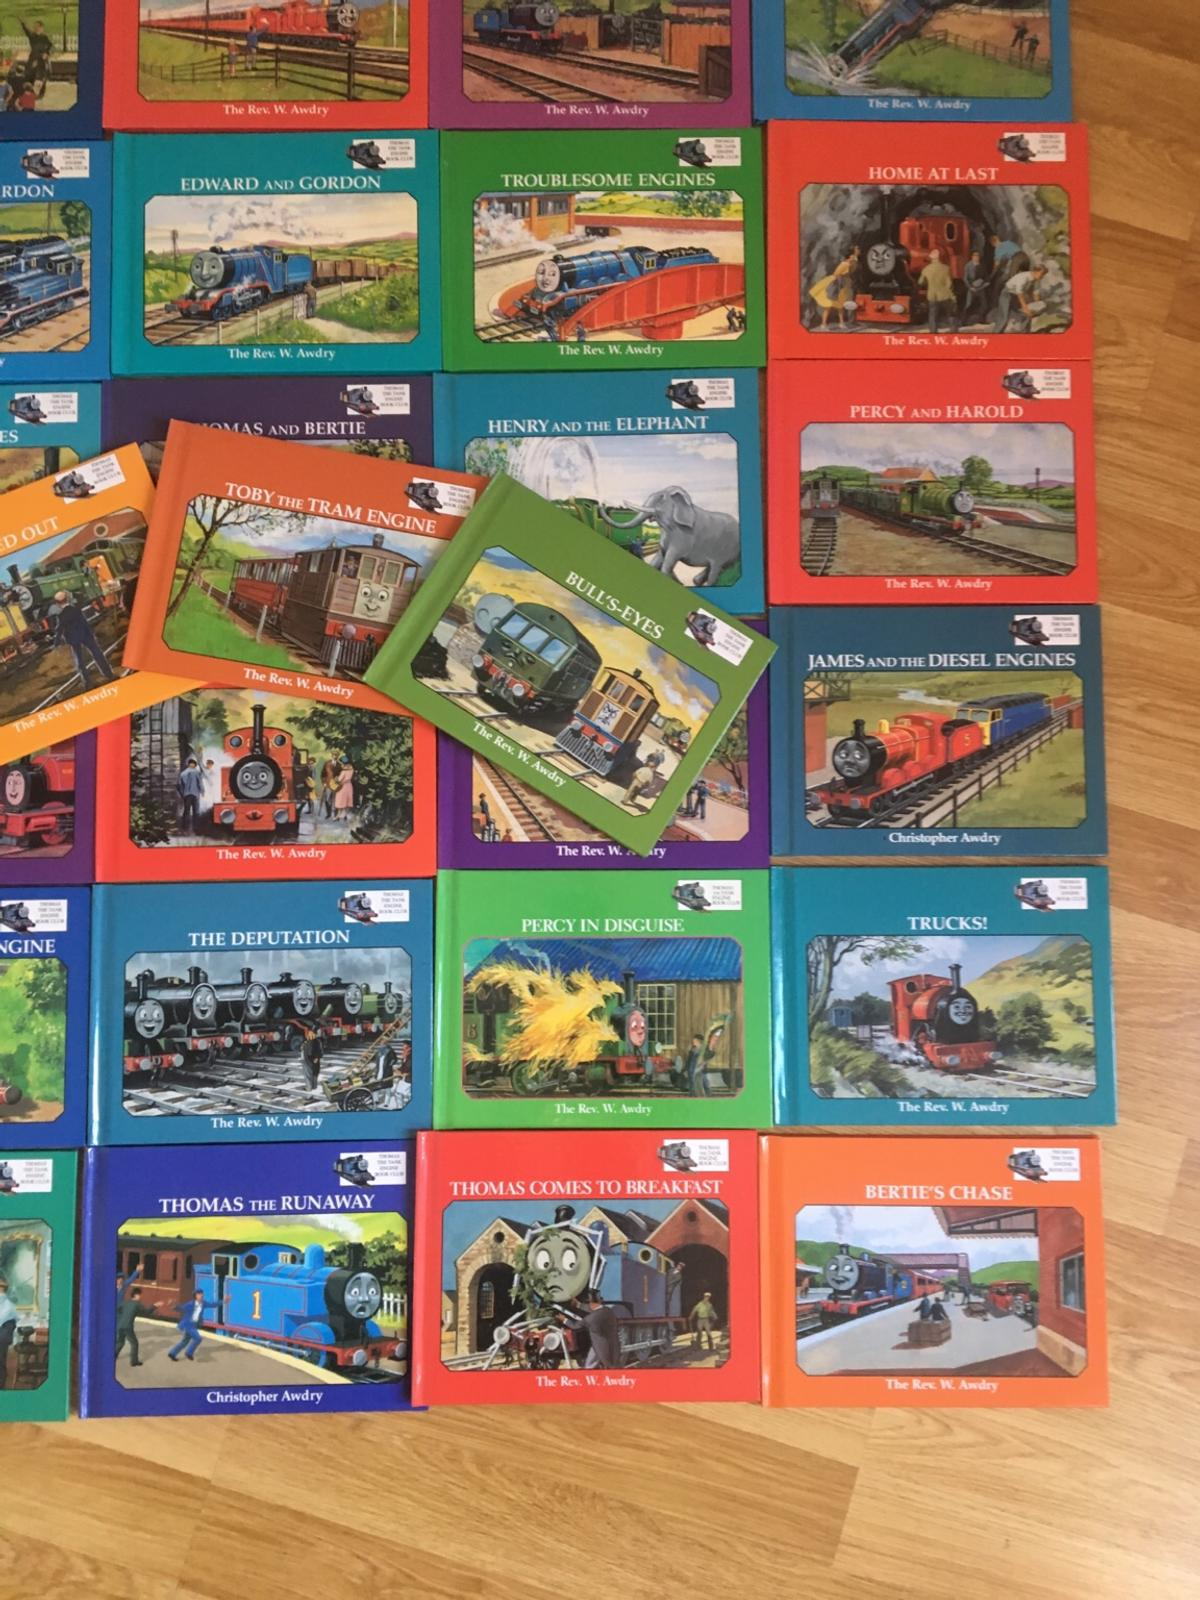 Lovely set of books immaculate condition.. never used.. set comes from Grolier.. Would estimate total cost of set be about £150 at least.. Lovely books for any Thomas fan..